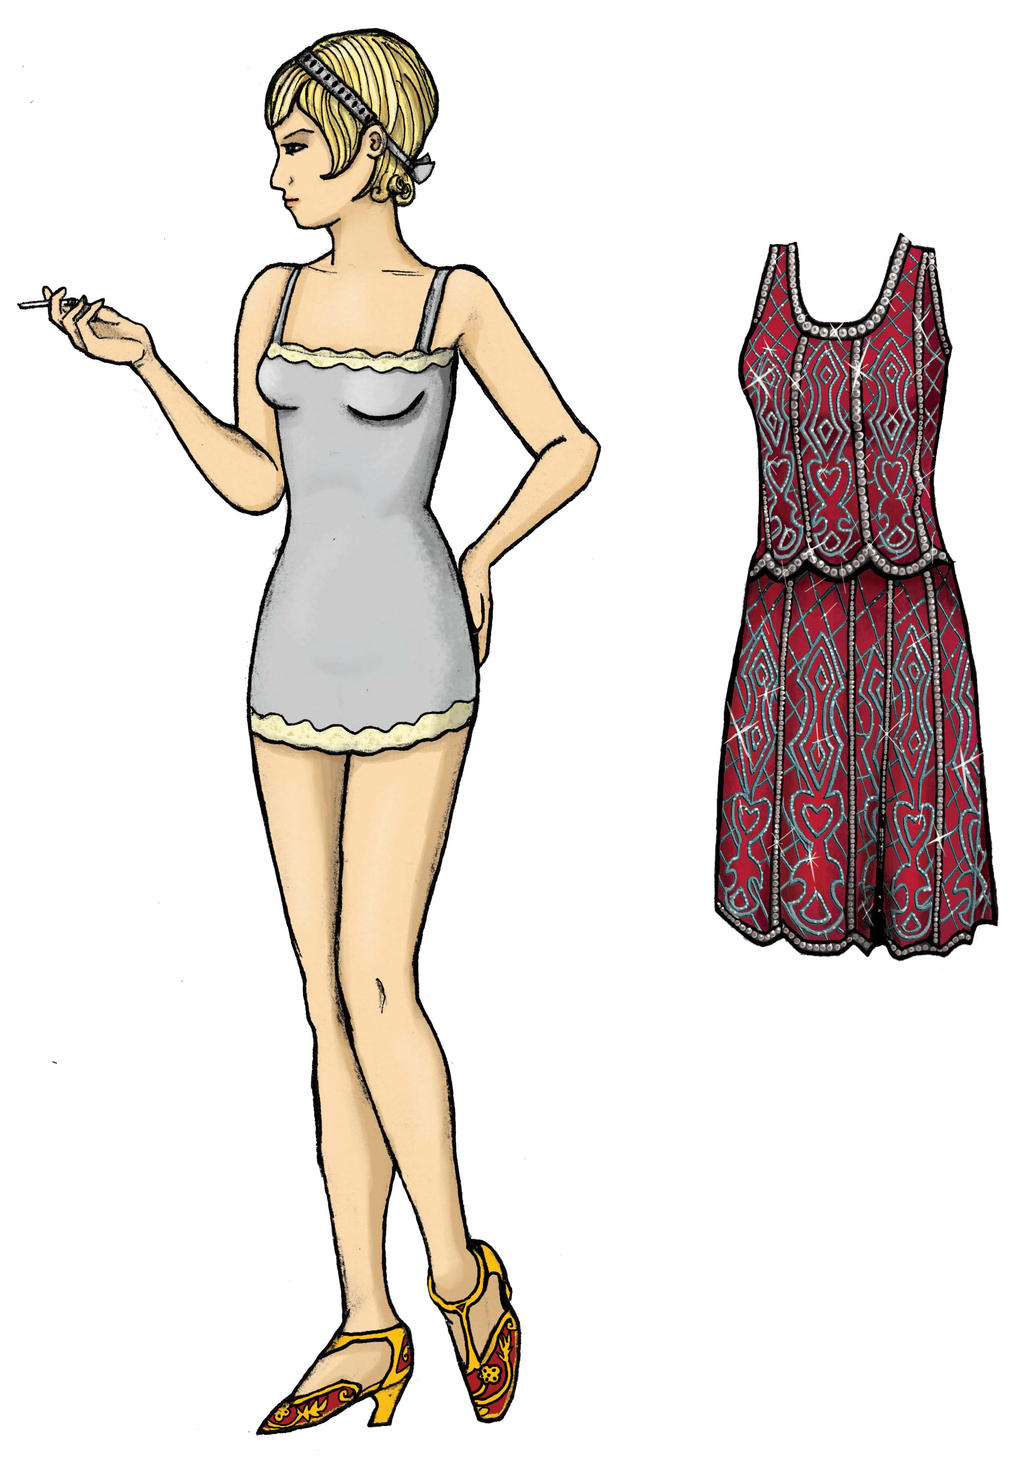 womens fashion in the 1920s essay Is this the perfect essay for you save time and order women's fashion of the 1920's : the flapper essay editing for only $139 per page top grades and quality.